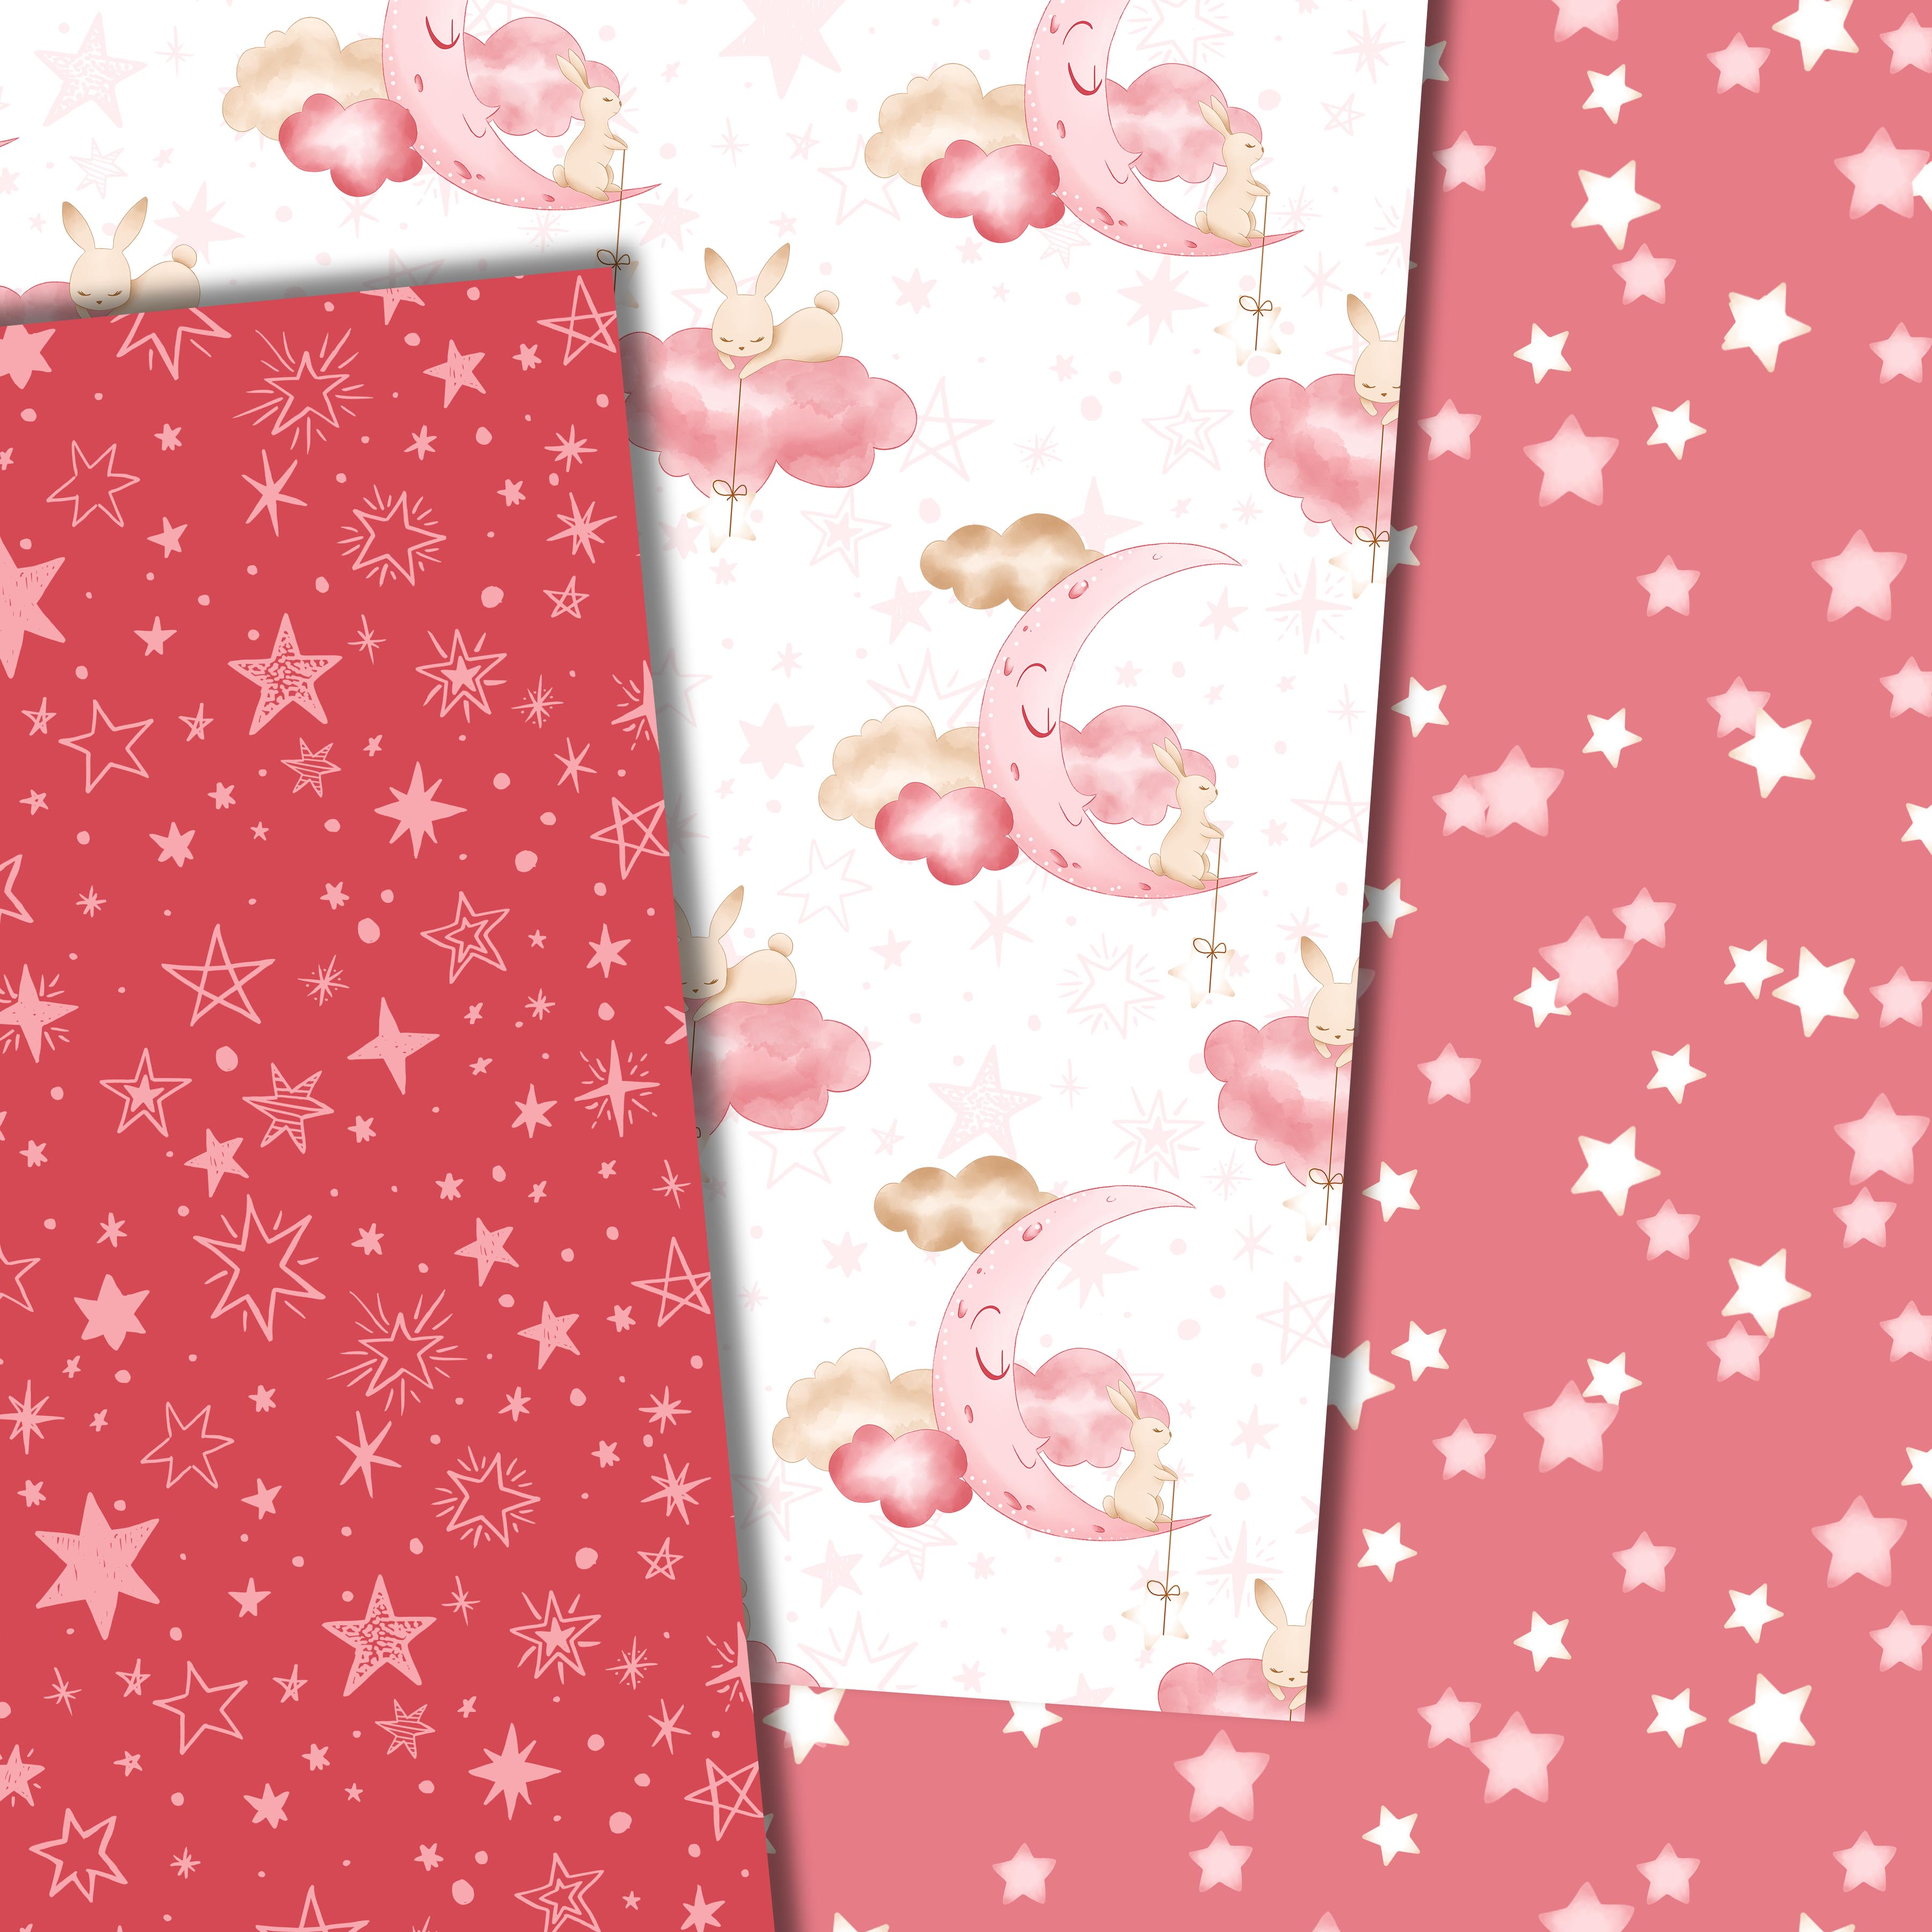 Good night bunny pattern in pink example image 6